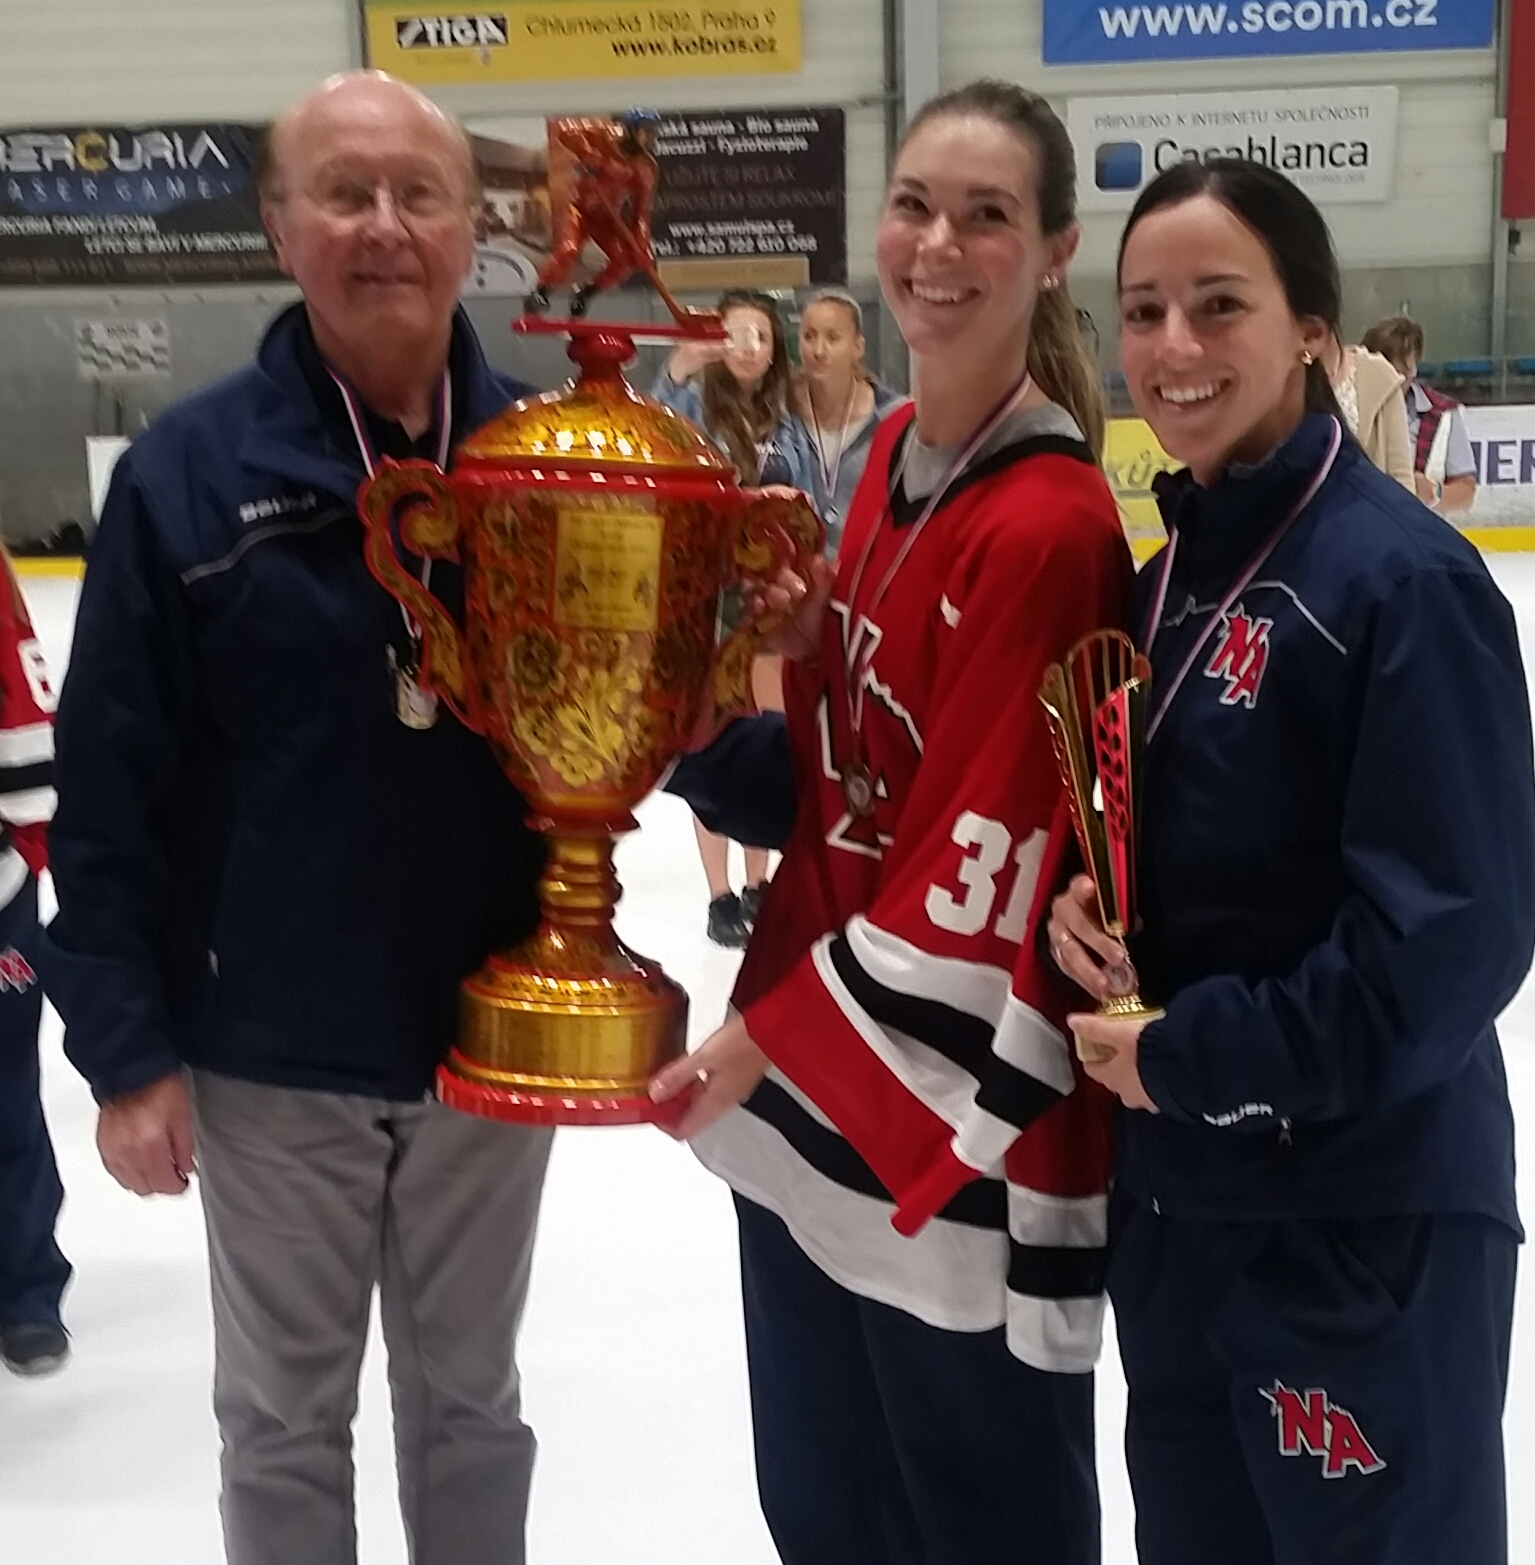 Team Captain Keira Goin with Coach Stephanie Scarpato and bob O'COnNELL after Team Red won gold at the chcc!